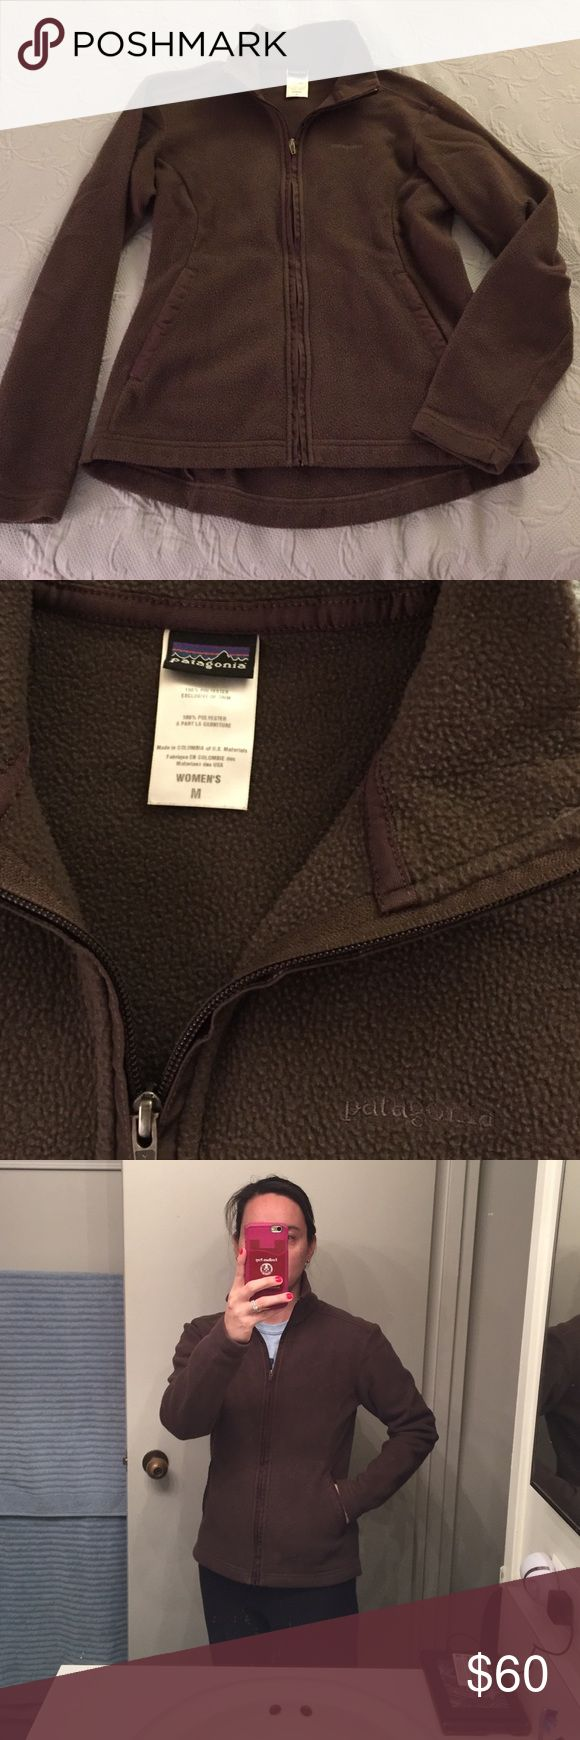 Dark brown Patagonia fleece jacket So soft and warm, this fleece jacket will last you many years. Ladies size Medium. Purchased from the Patagonia store a few years ago. Two slit pockets. High neck when fully zipped. Patagonia Jackets & Coats